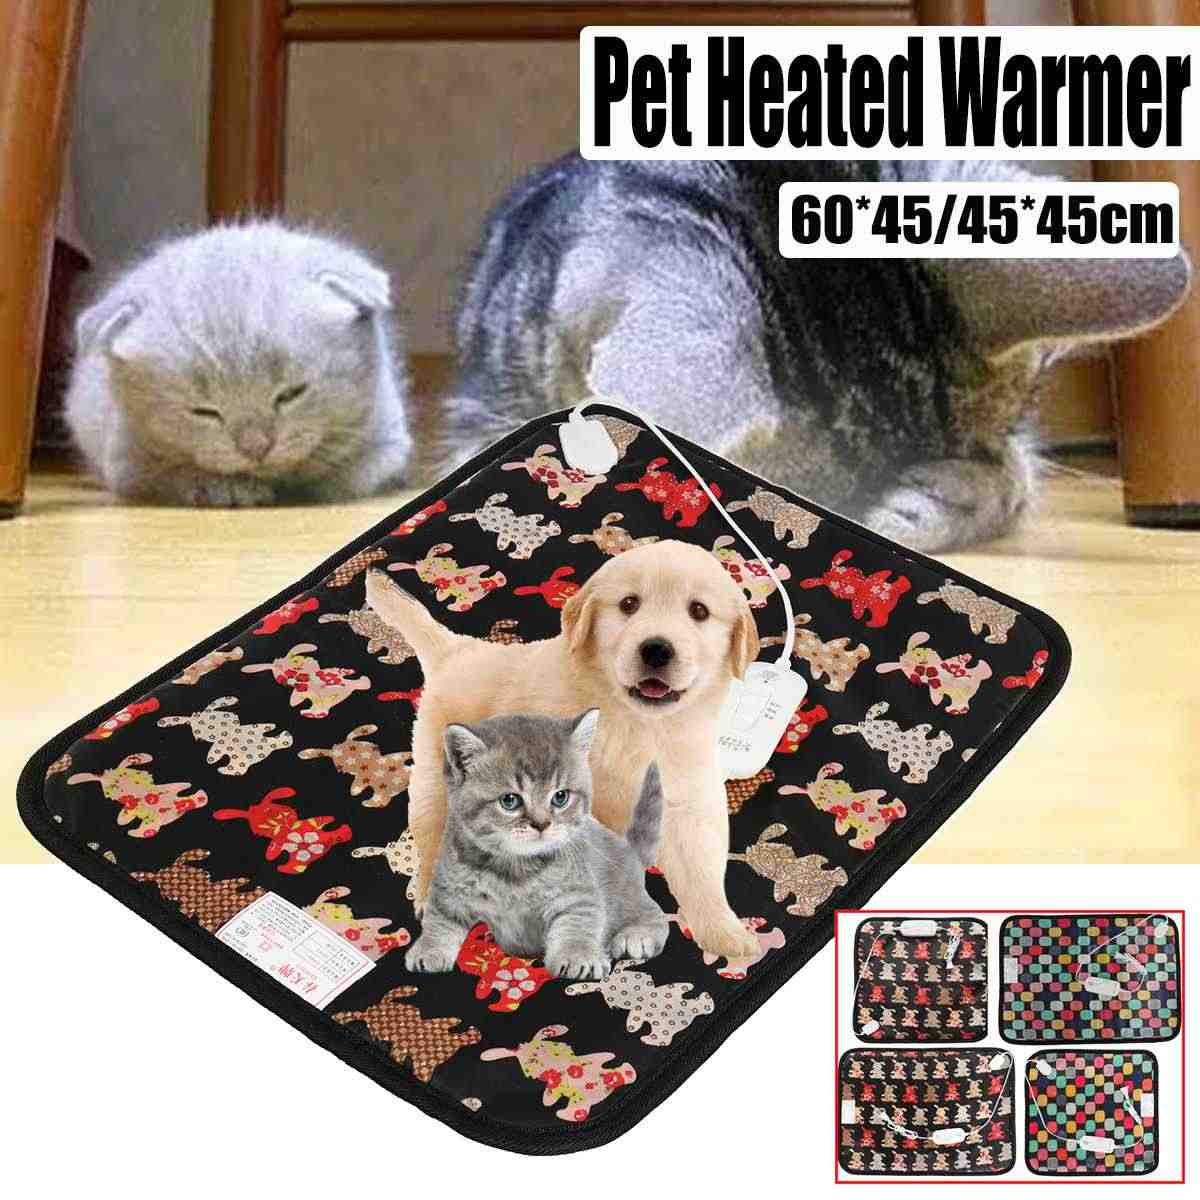 Waterproof Pet Heater Pad 45X45/60cm Pet Electric Heater Mat Anti-scratch Bite Cat Dog Pet Heated Blanket Cushion 220V 20/25W